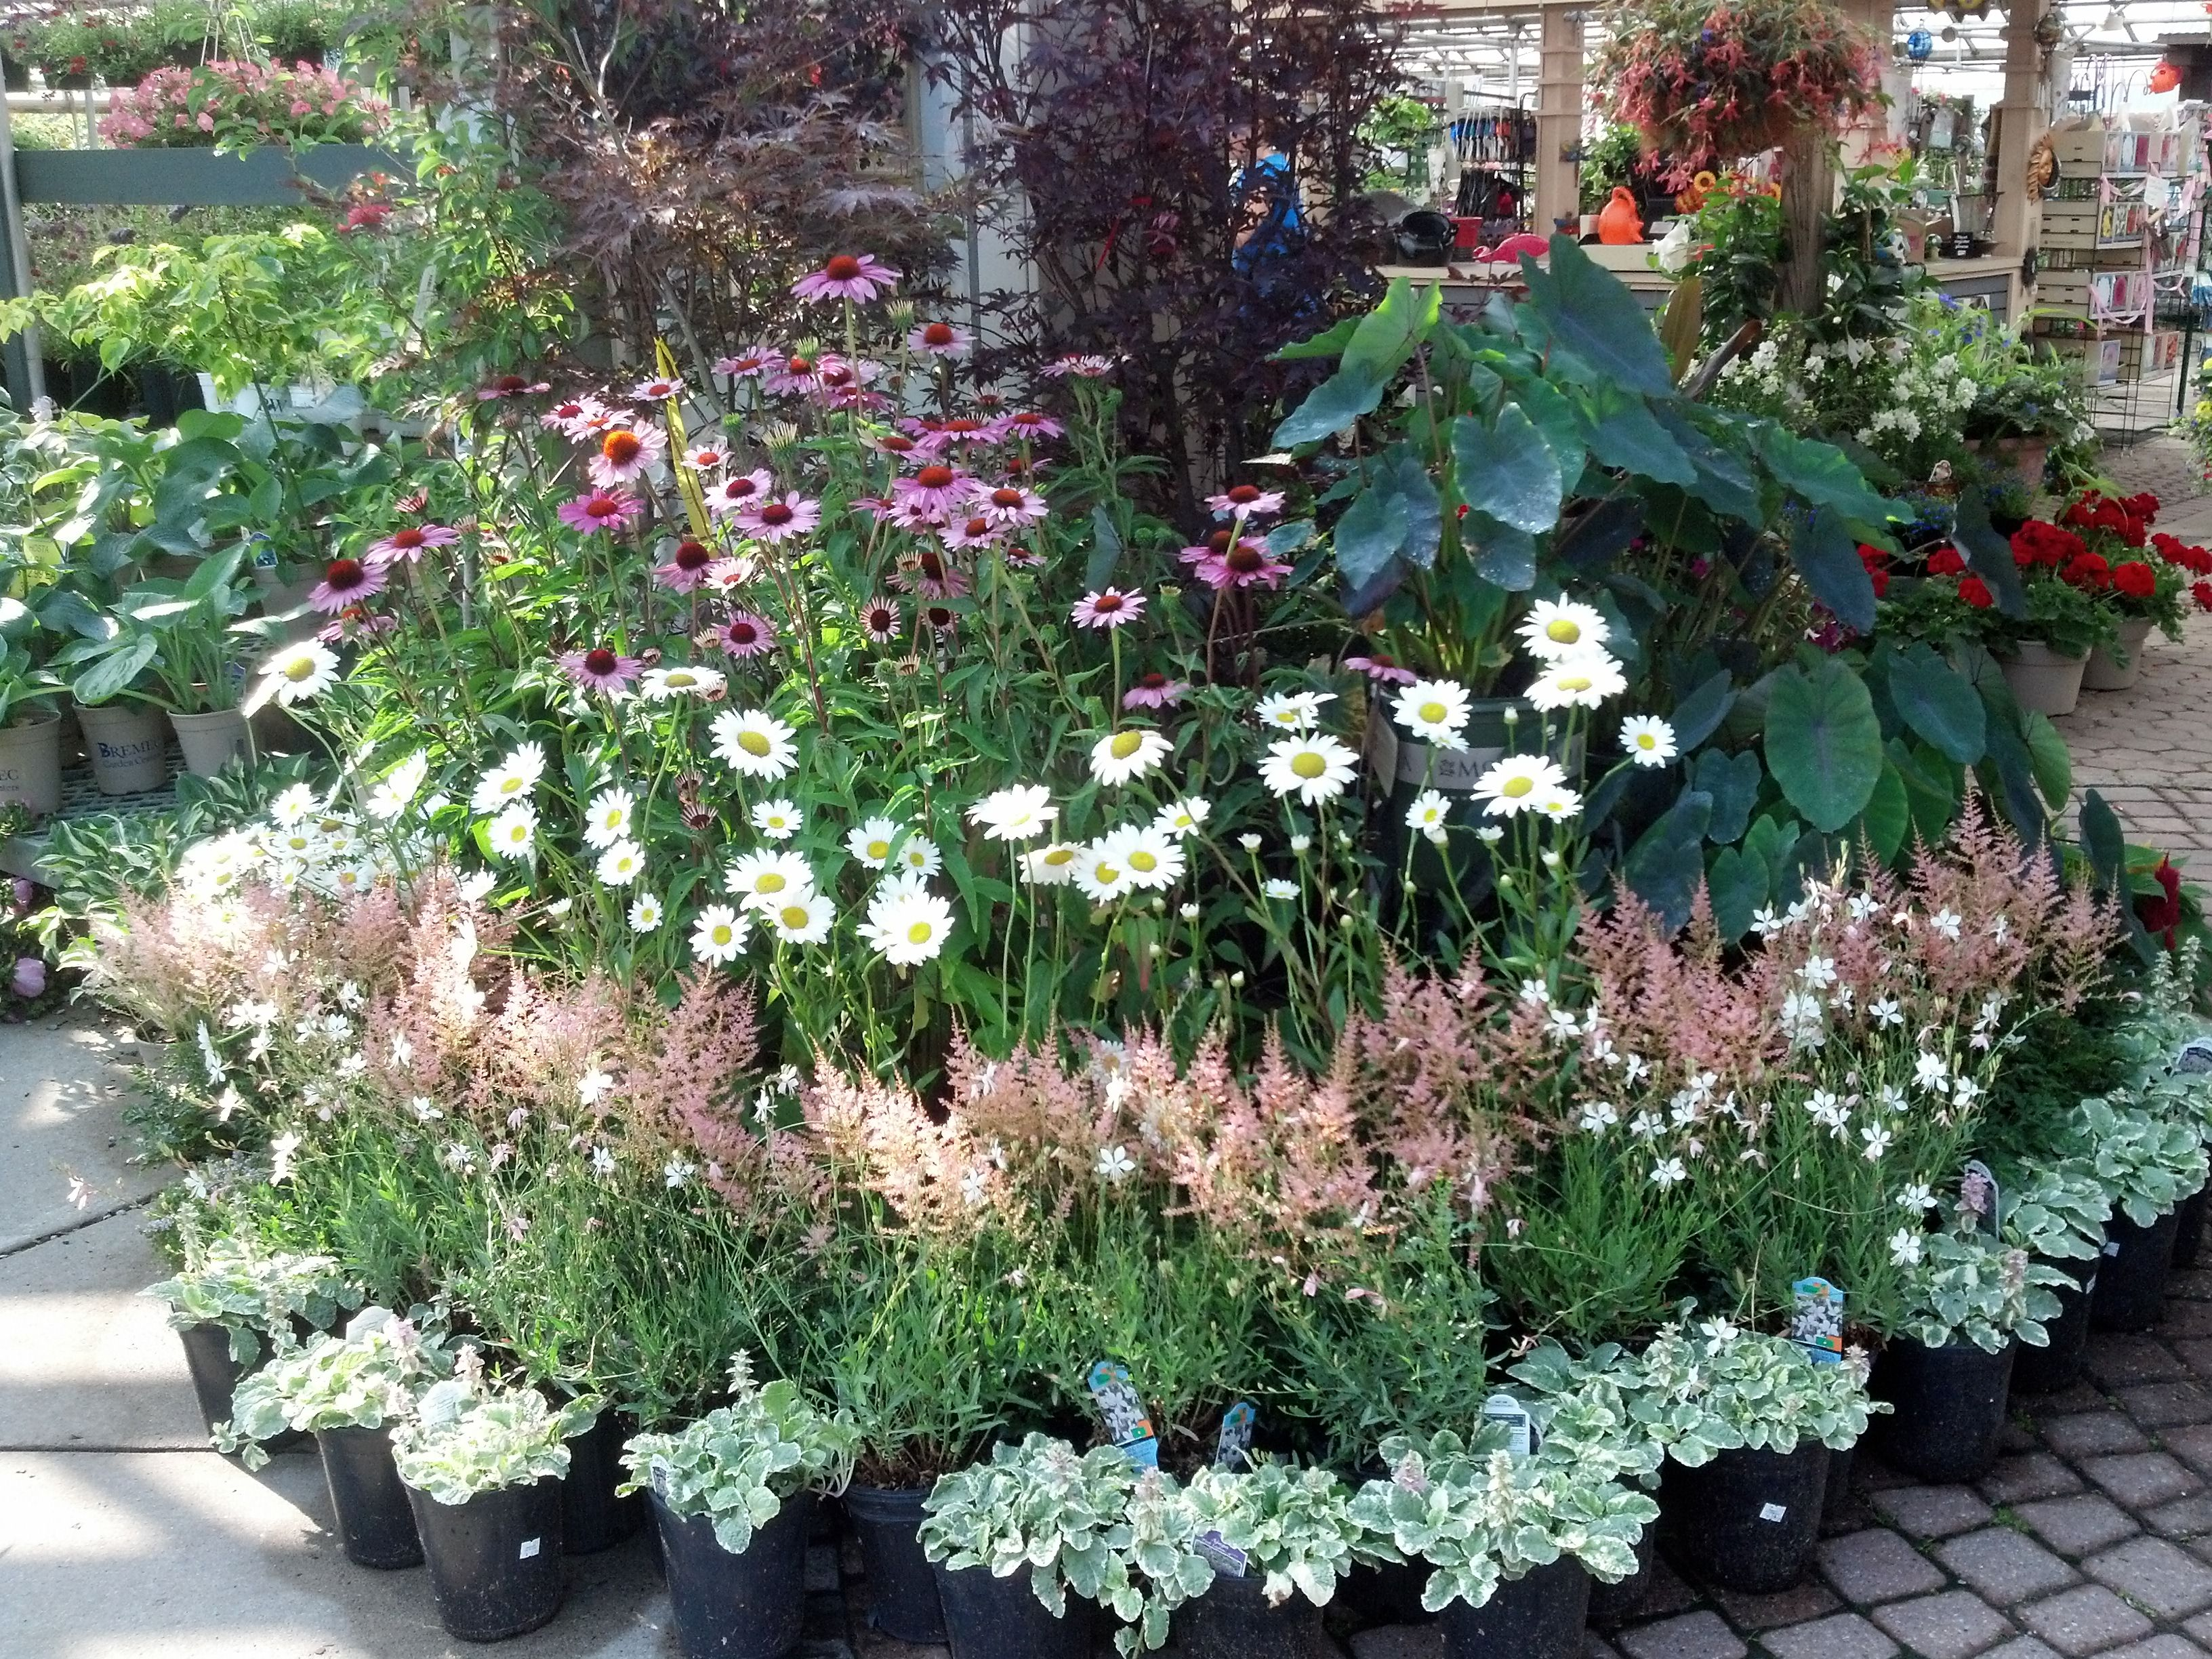 Bremec Garden Centers Chesterland Ohio Summer Beauty Mixing Traditional Cone Flowers And Shasta Daisies With Tropicals With Images Shasta Daisies Garden Center